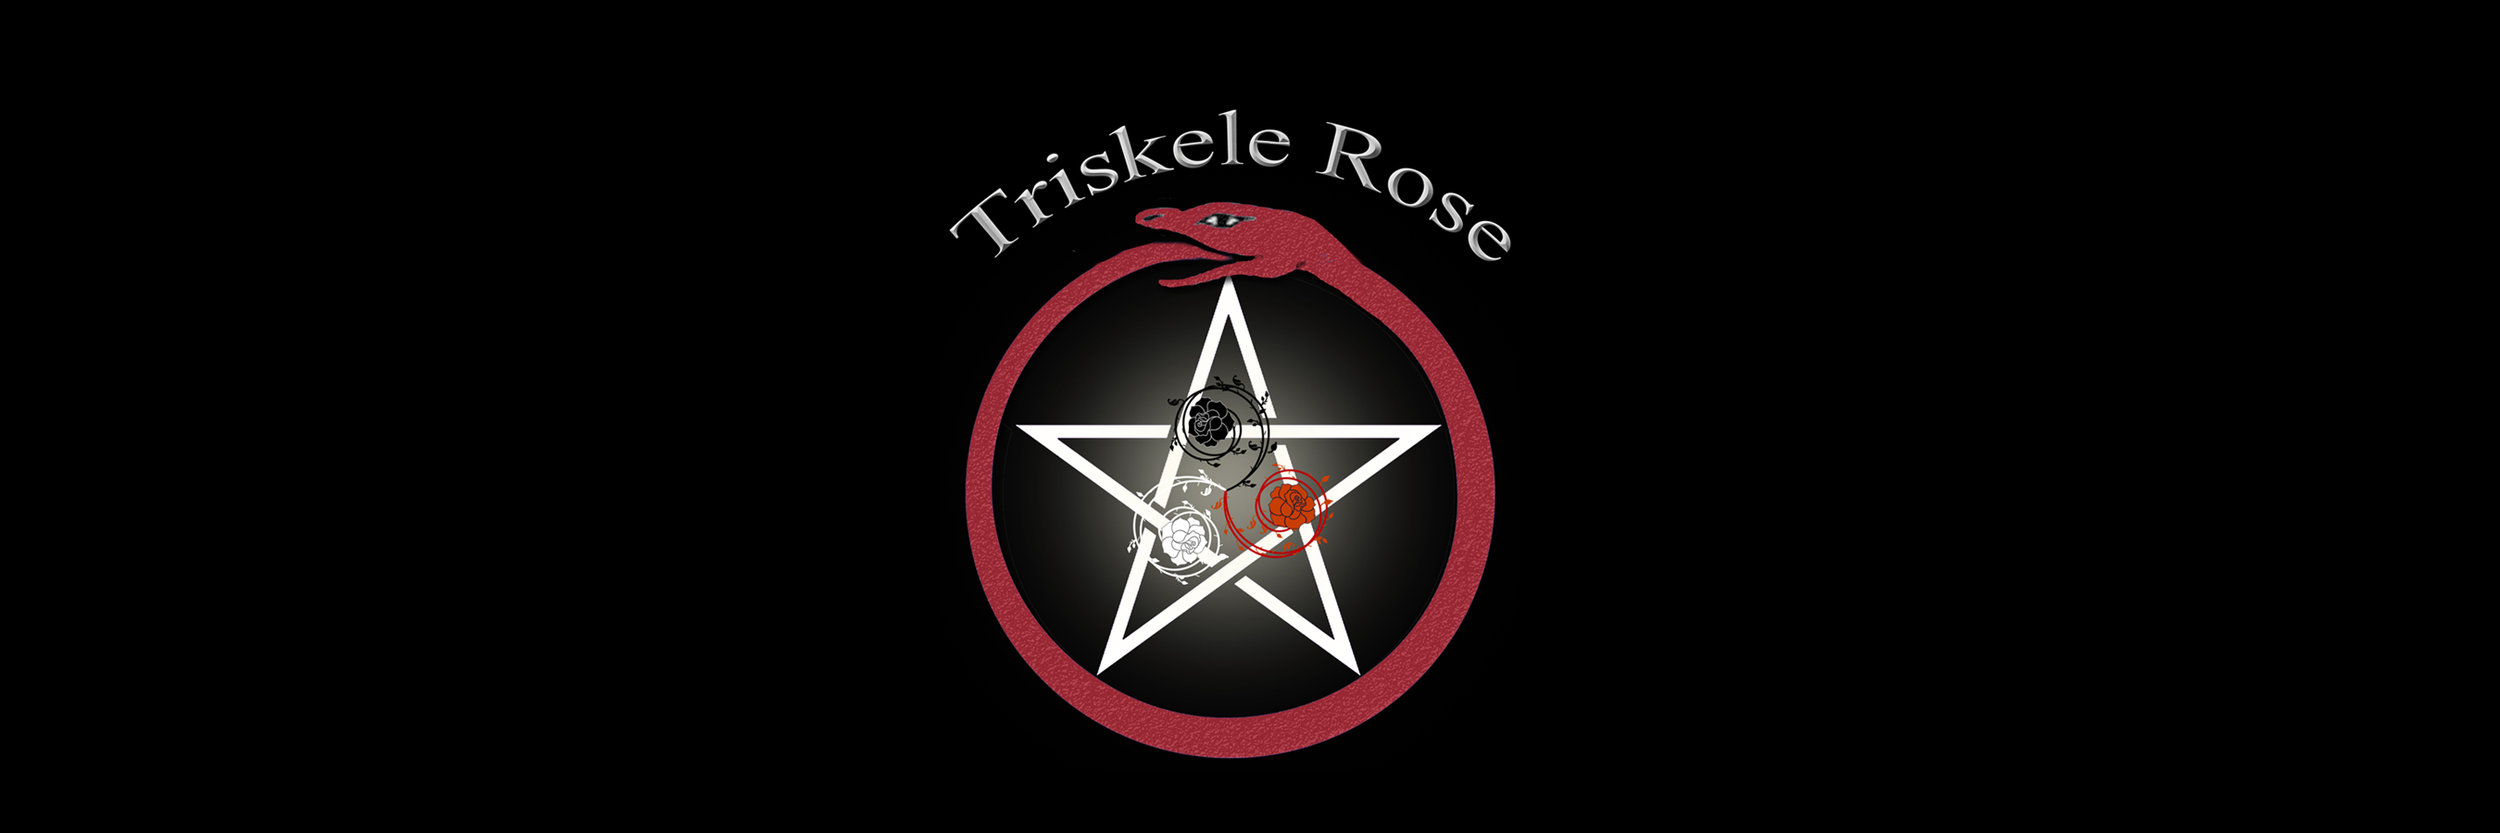 About triskele rose witchcraft triskele bannerg biocorpaavc Choice Image